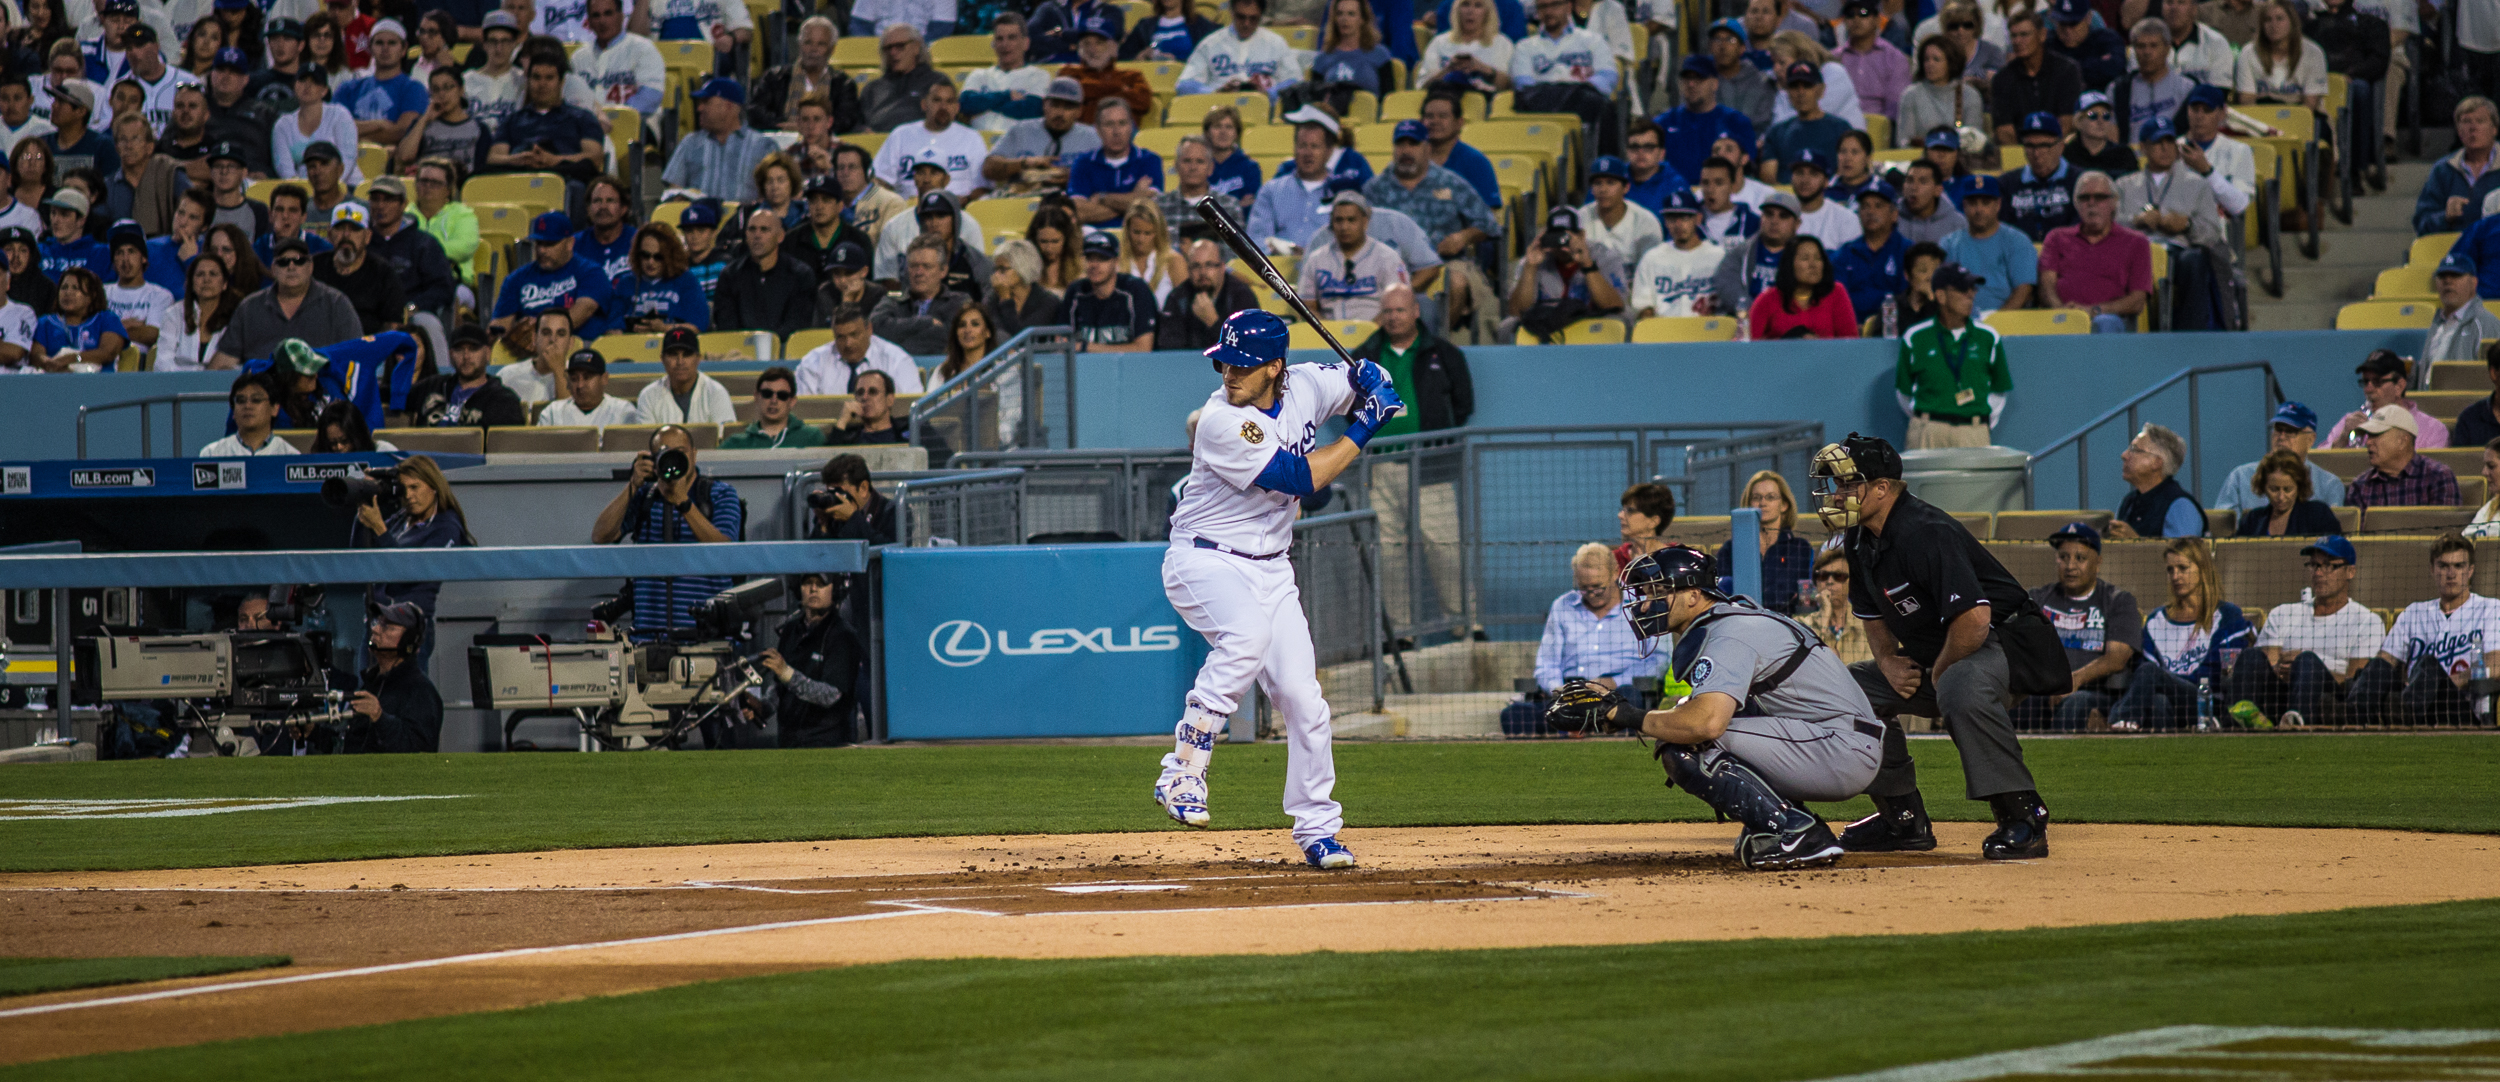 Yasmani Grandal about to swing